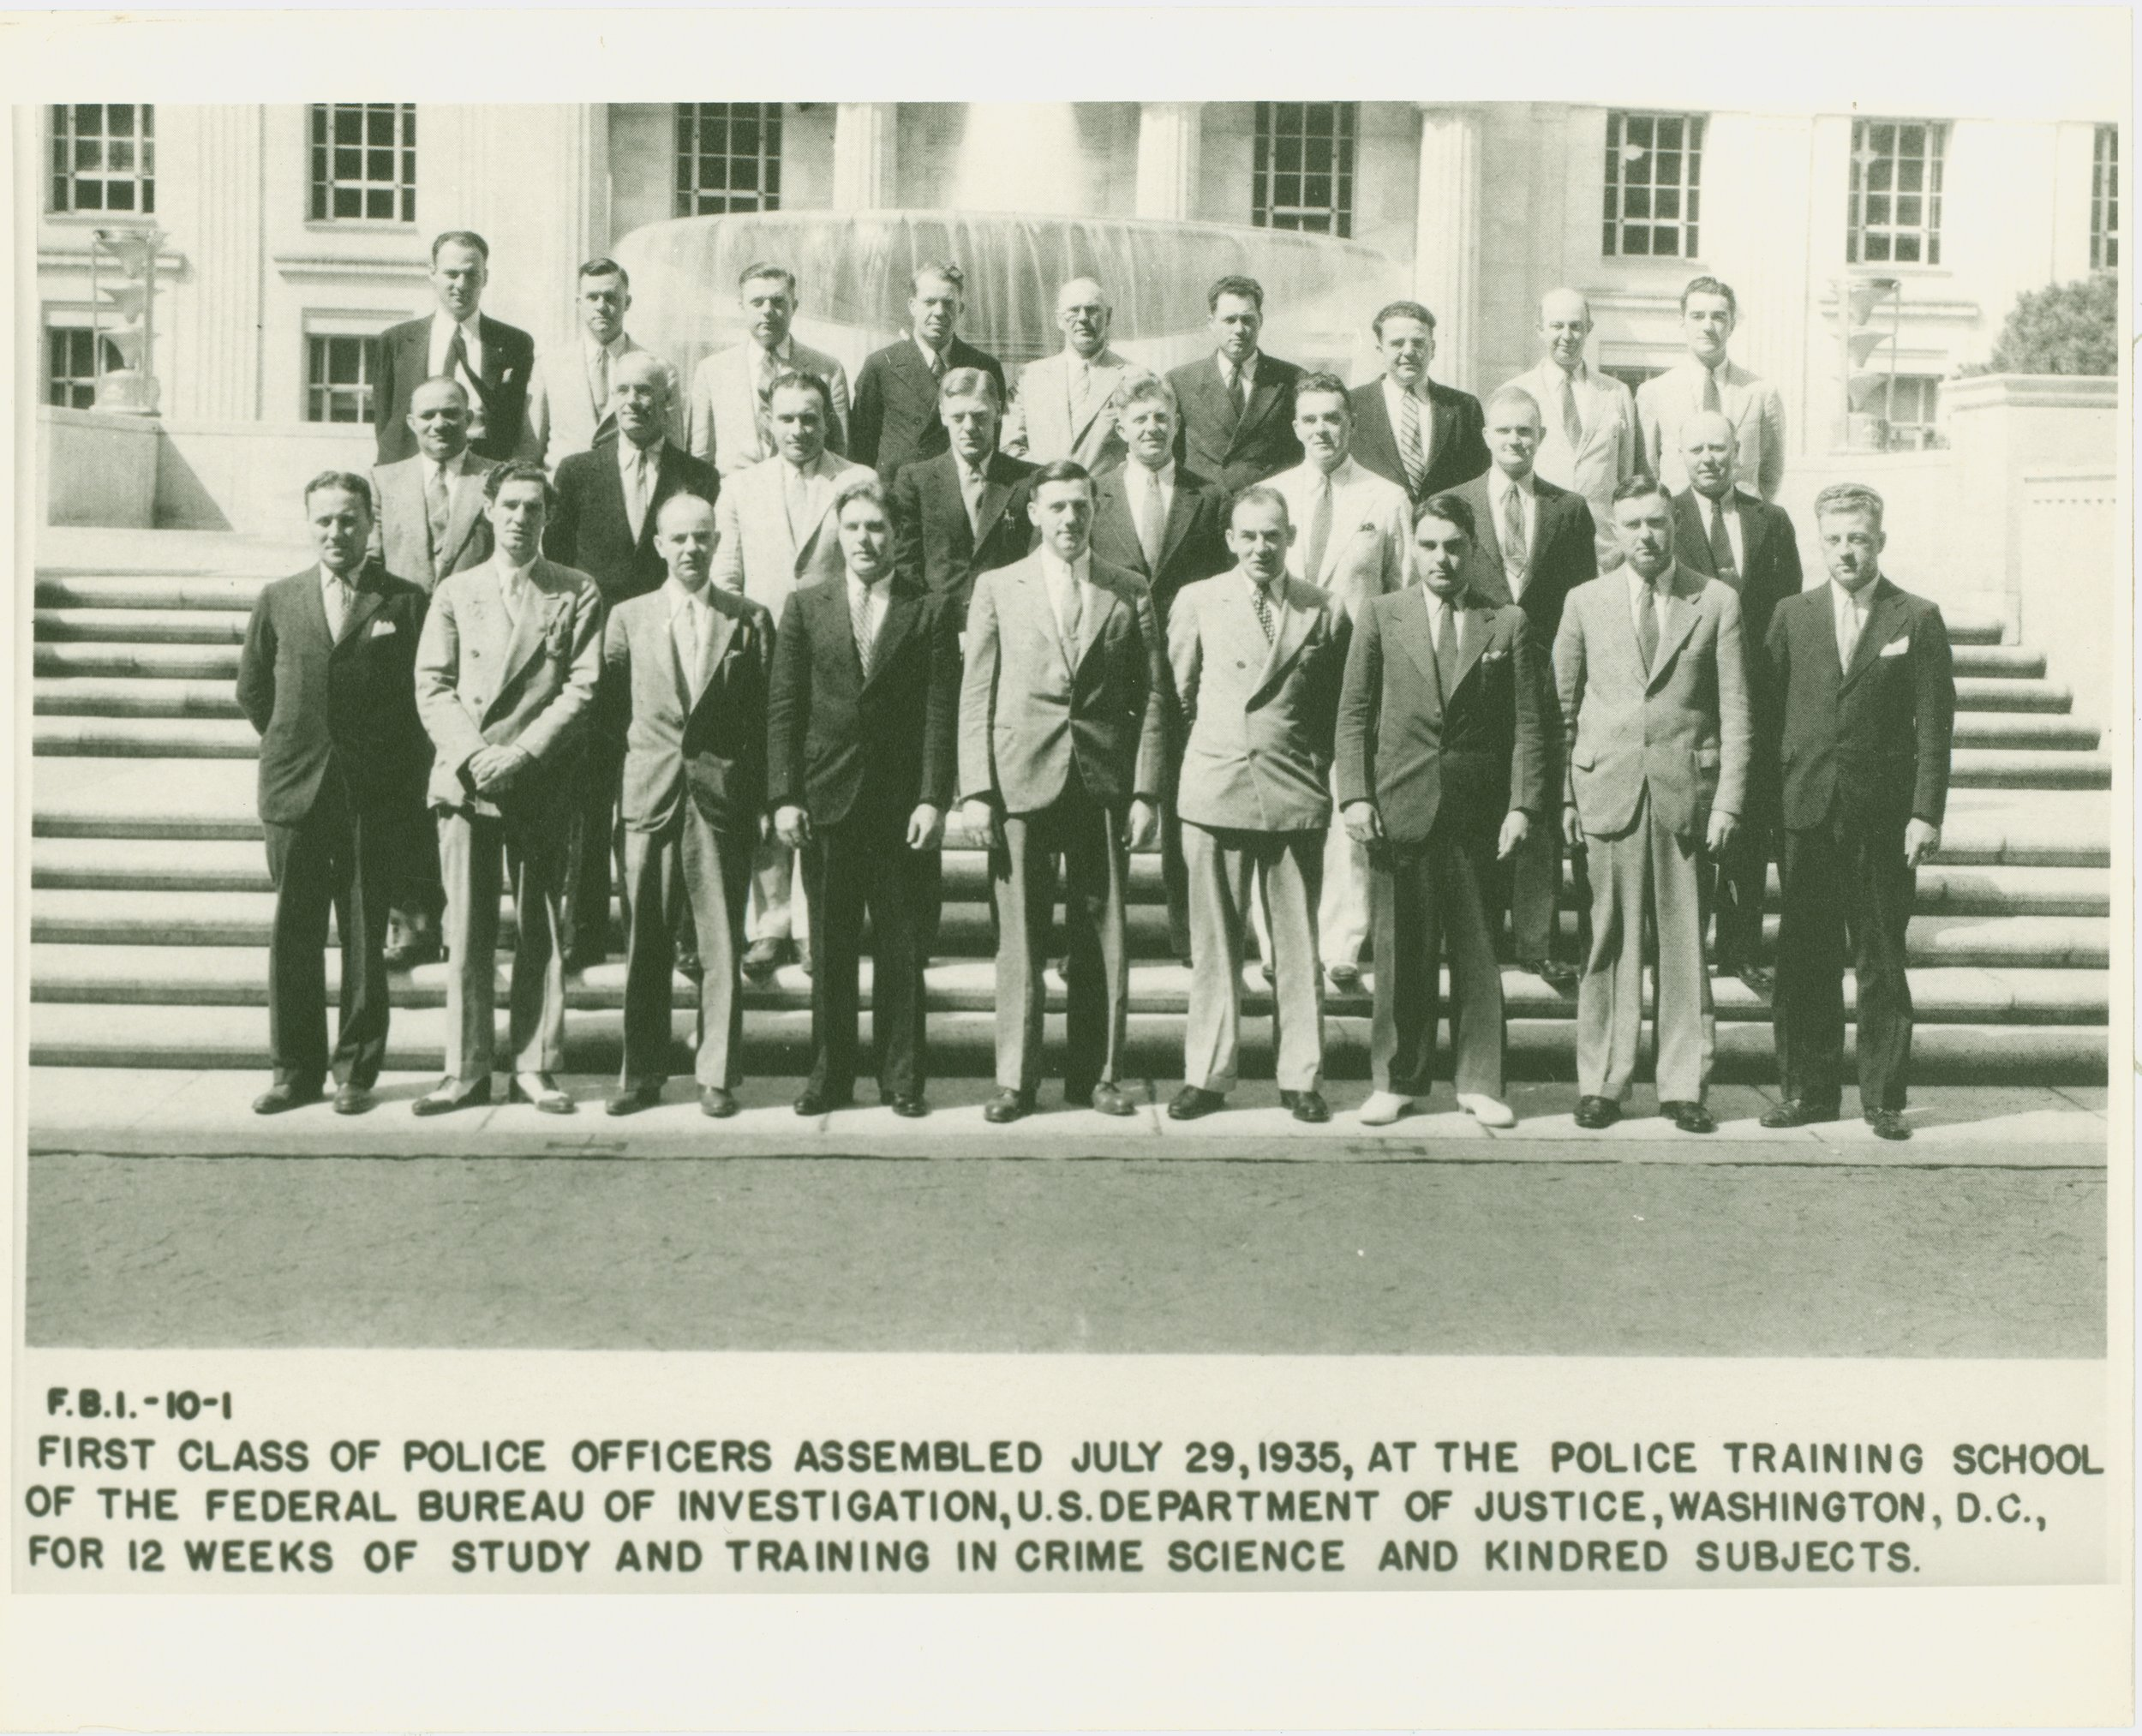 """First known as the FBI """"Police Training School"""" this is the first class of graduates of what was renamed the FBI's National Academy. There was 1 class in 1935 and 2 classes in 1936."""